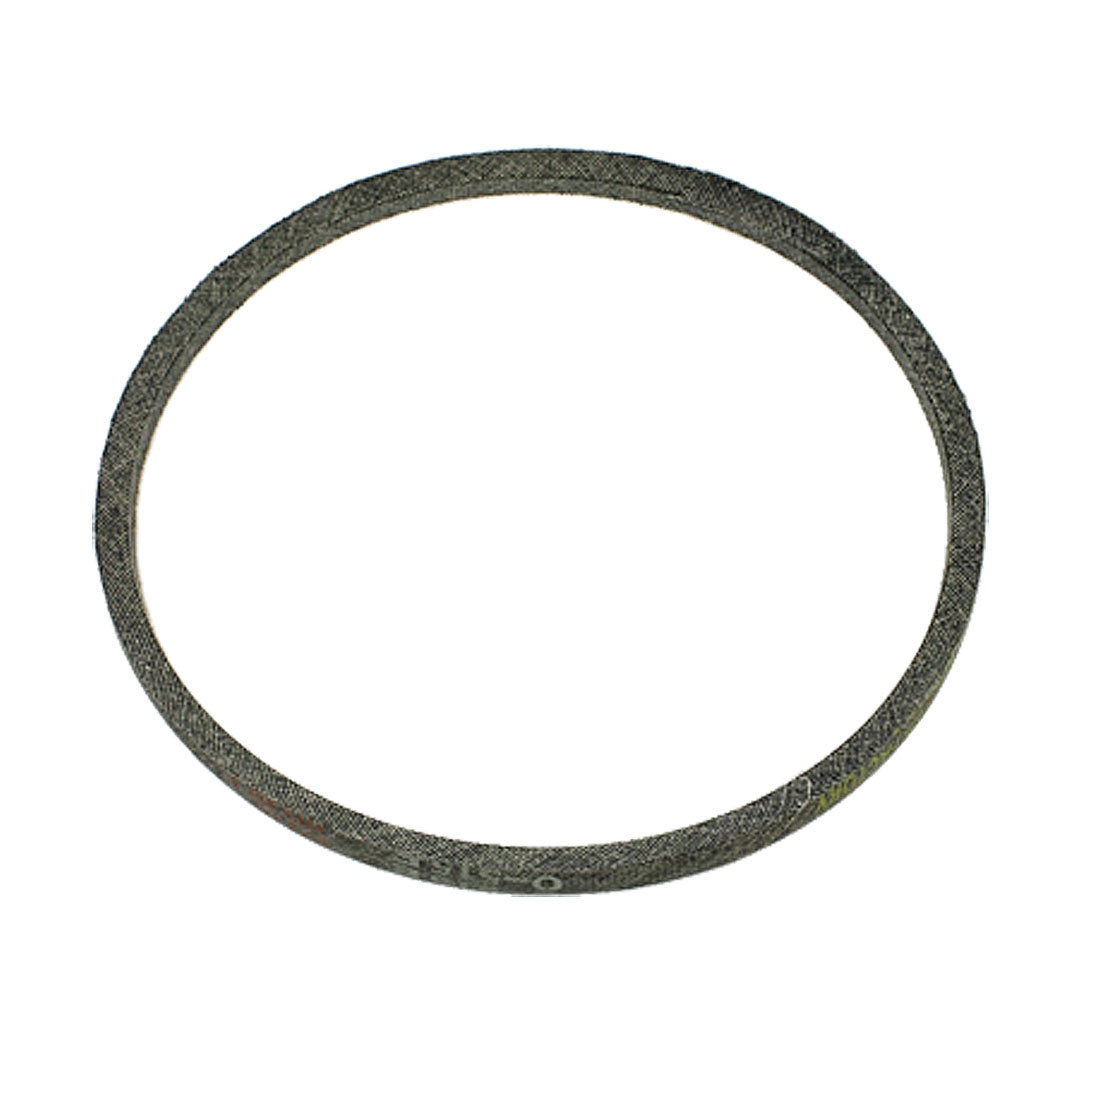 "Washer Washing Machine Replacement 515mm 20 3/8"" Inner Girth V Type Belt"